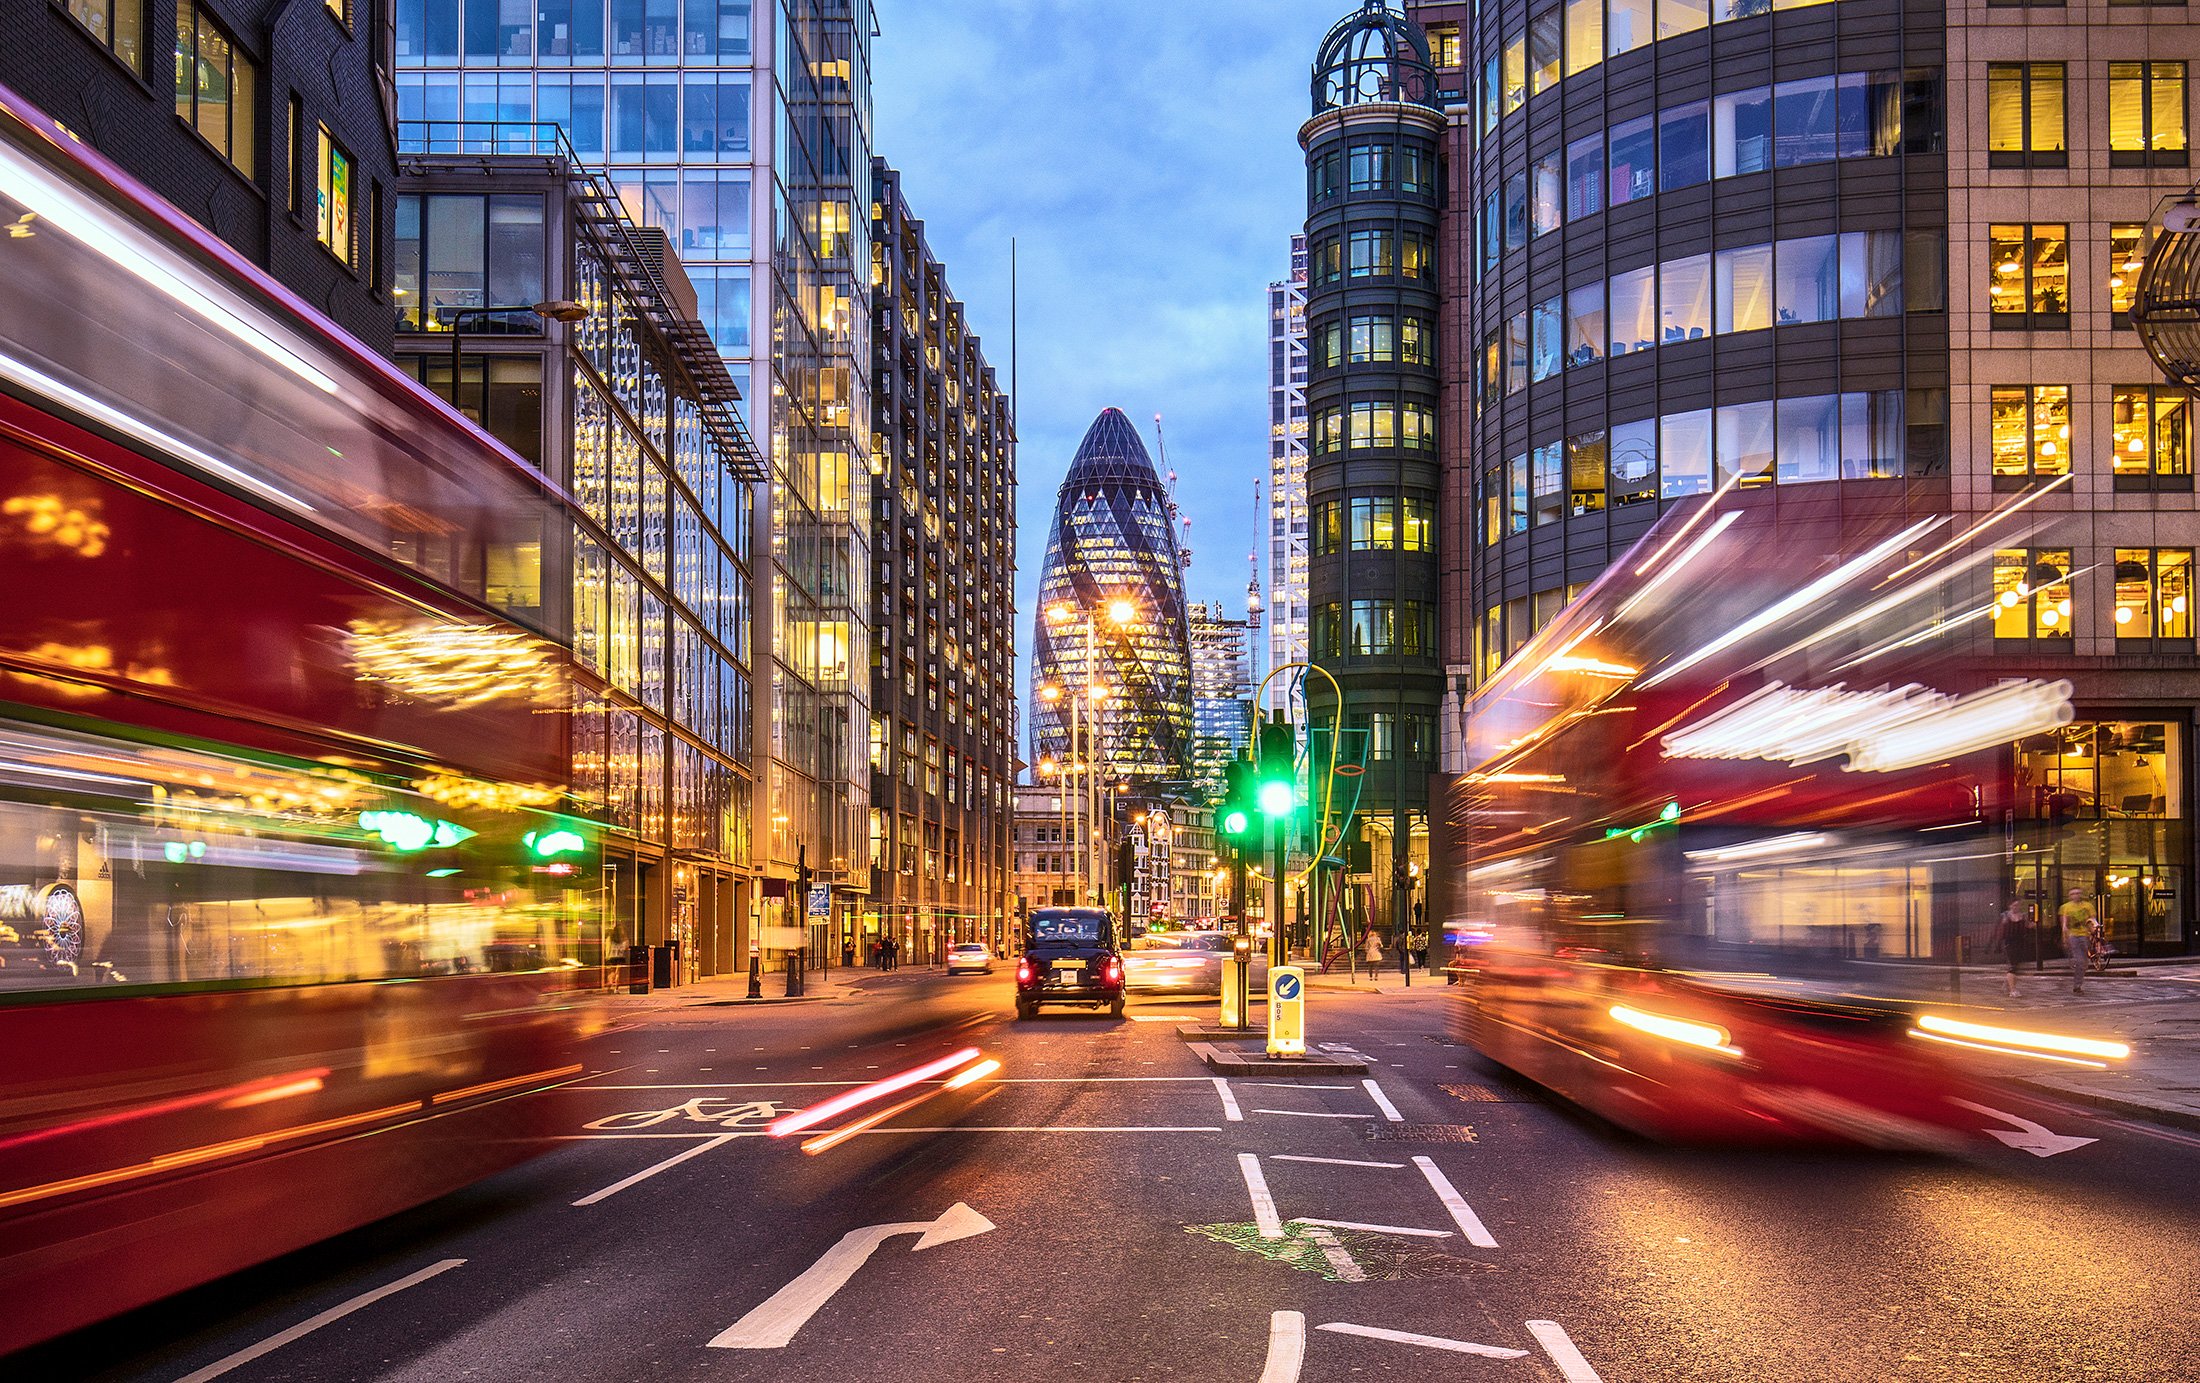 Buses, cars, taxis and pedestrians in London's financial district